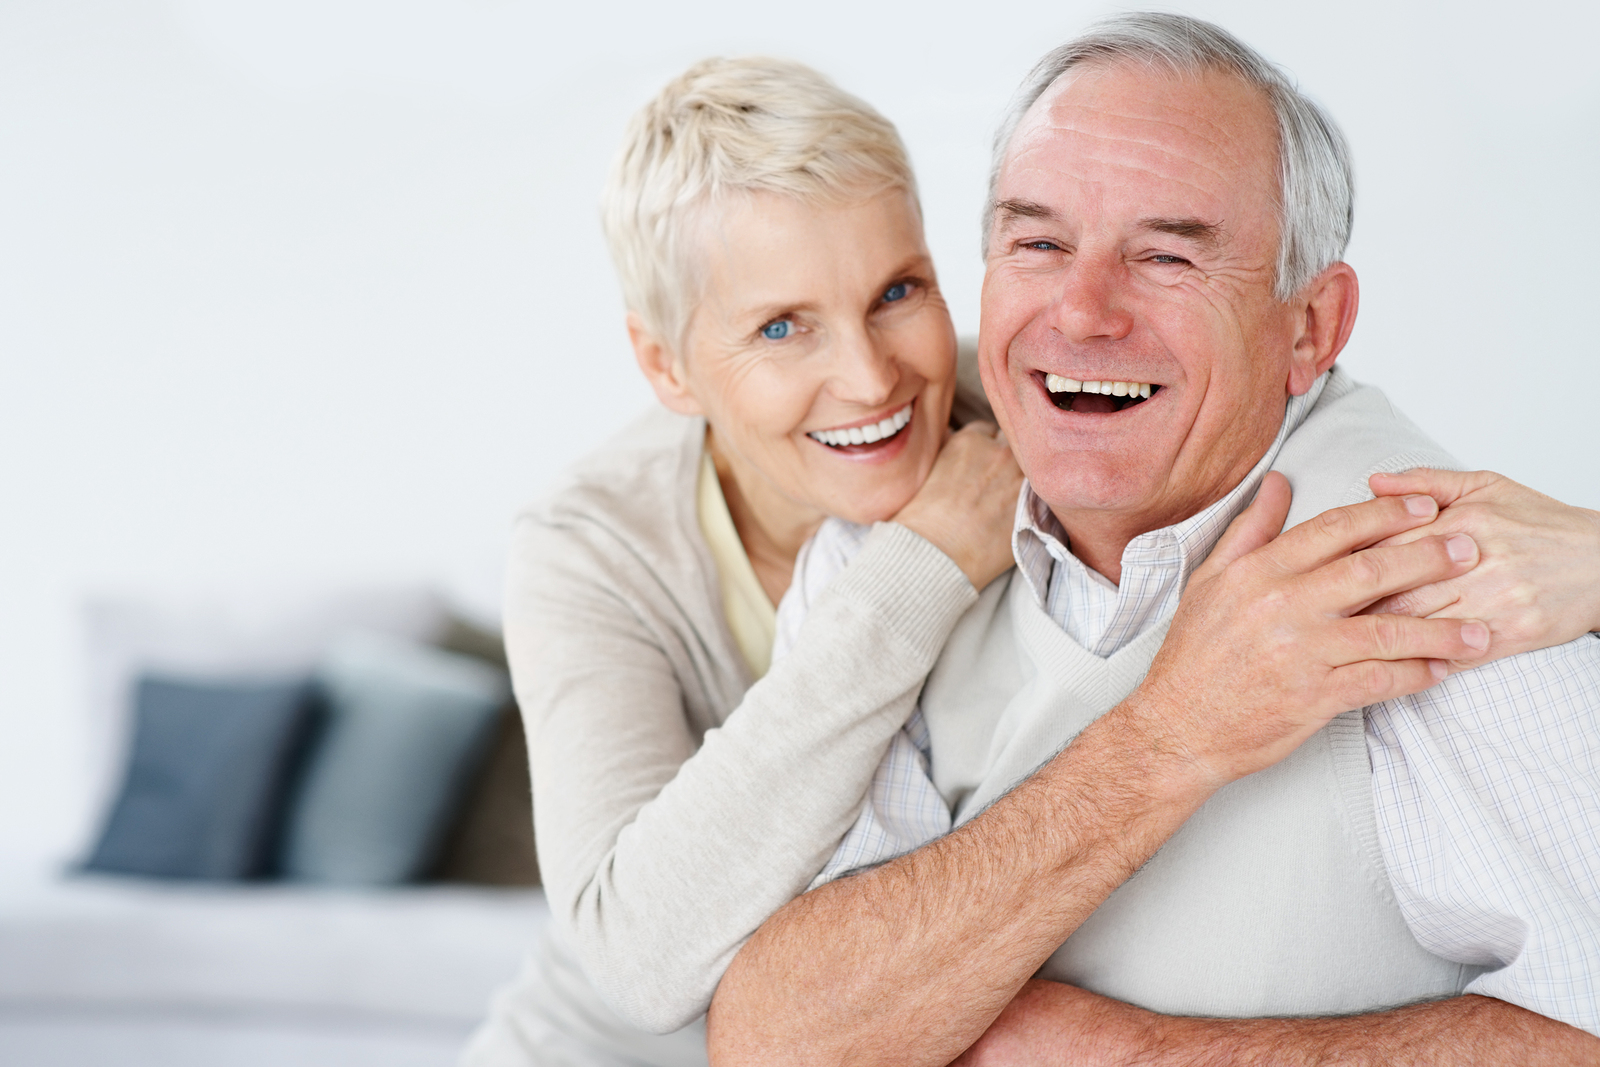 bigstock-Retired-Elderly-Couple-Smiling-6361659